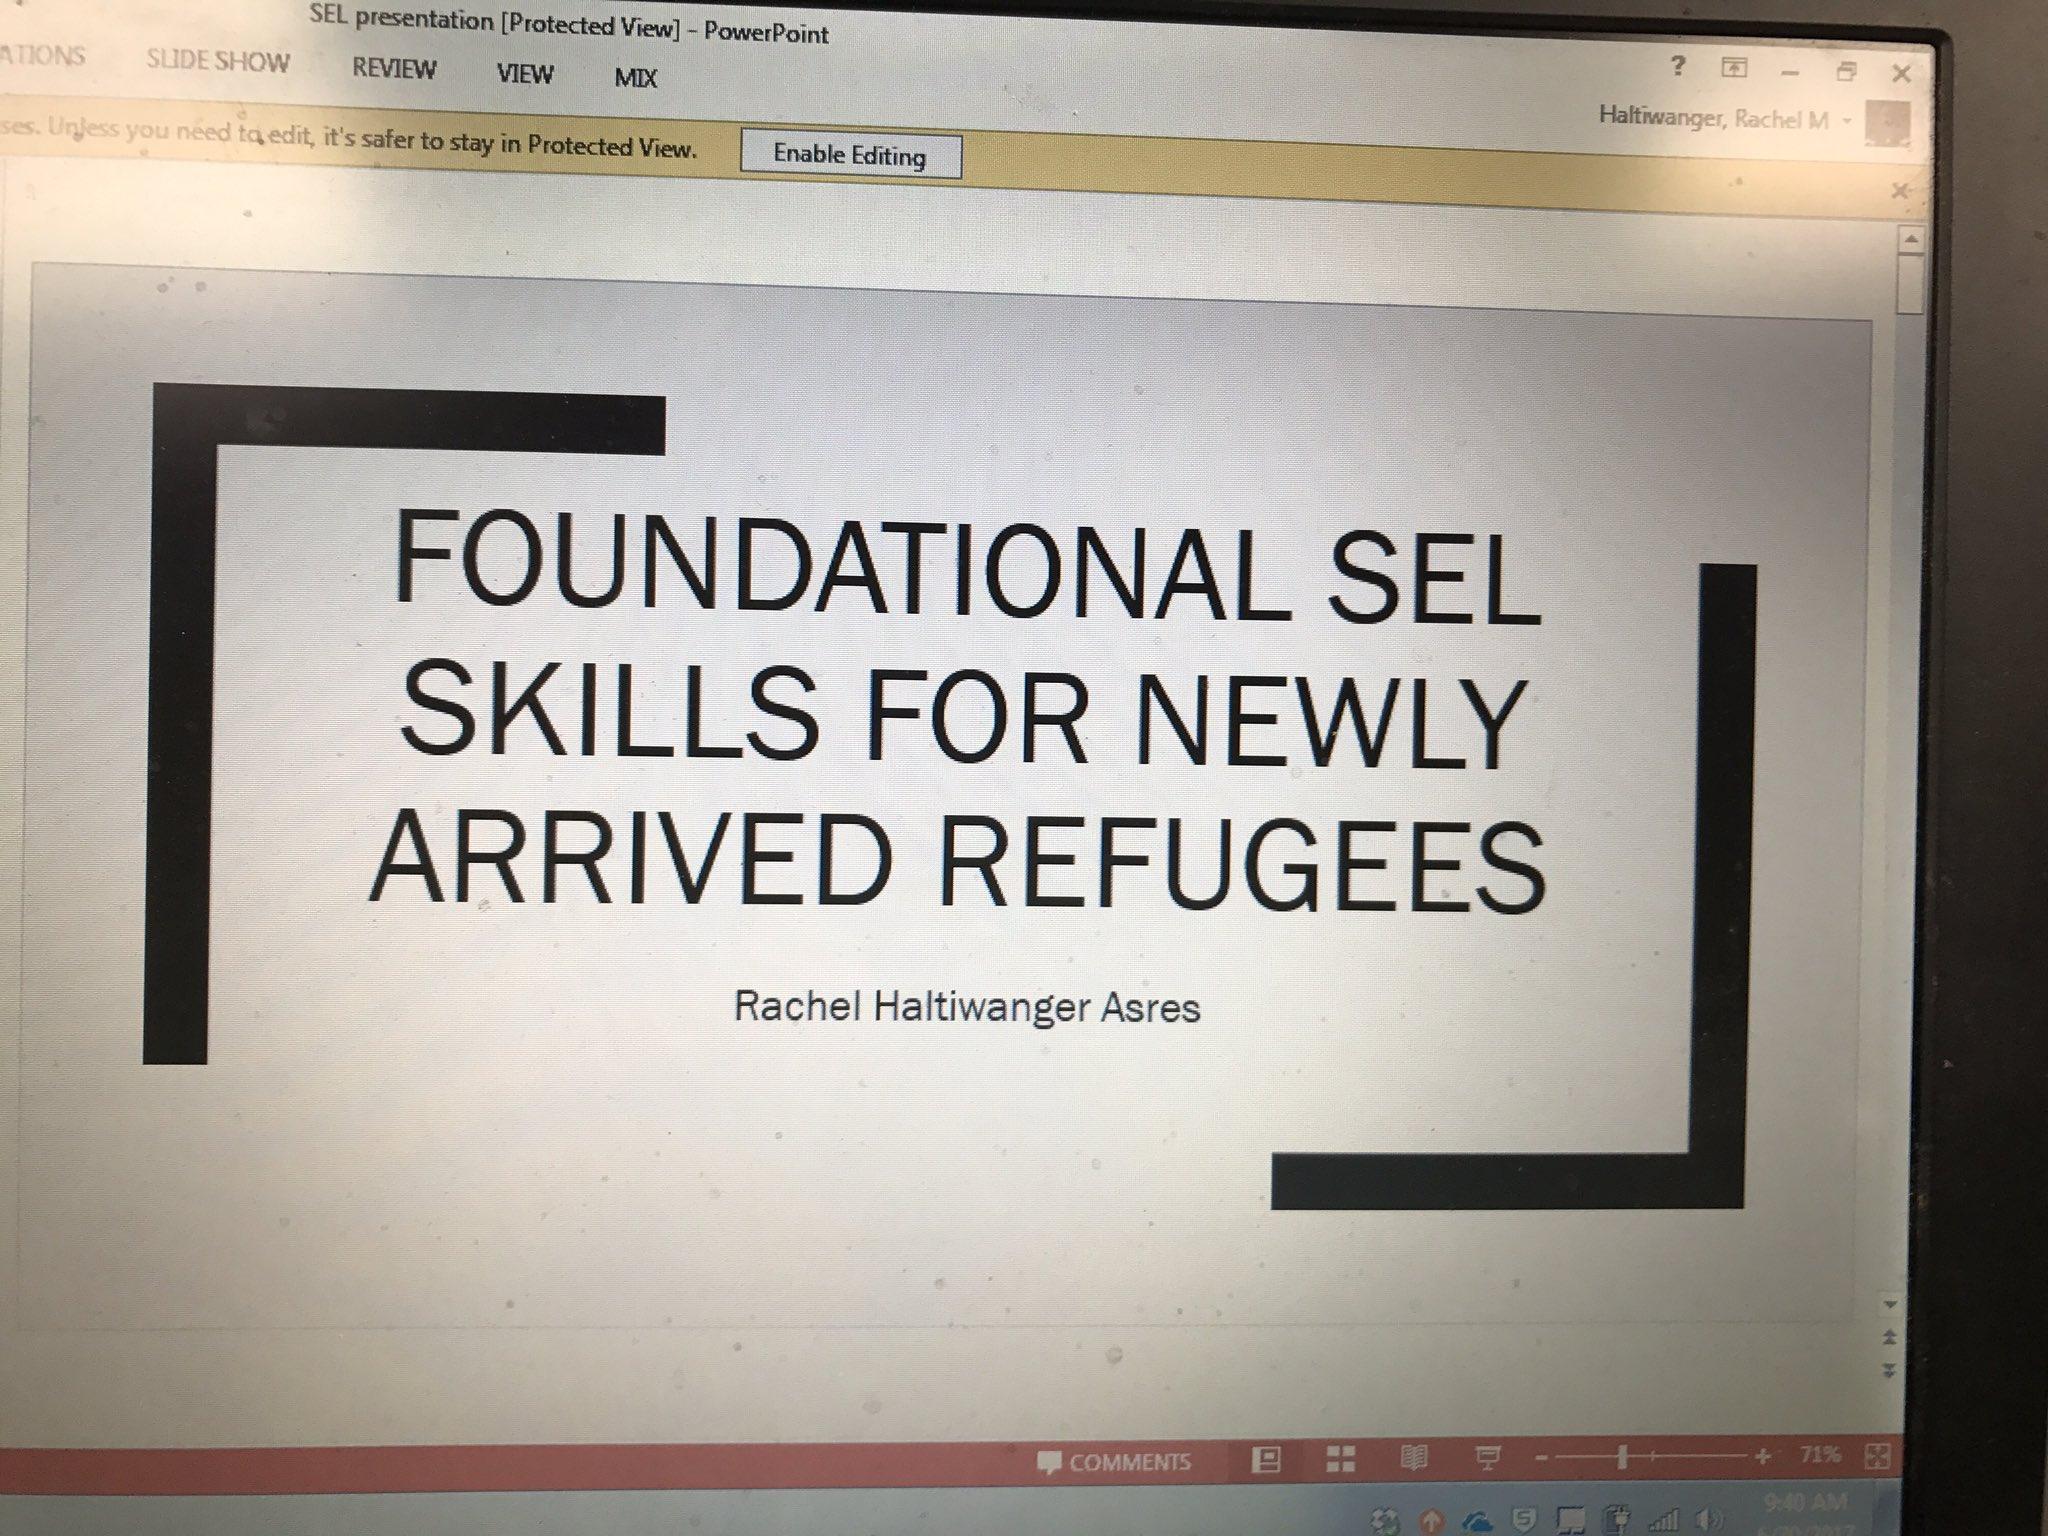 Come join me at 10:15 or 1:45 to hear about the SEL work we've been doing in SIFE this year! #SELconference https://t.co/5vOvpyQQXd